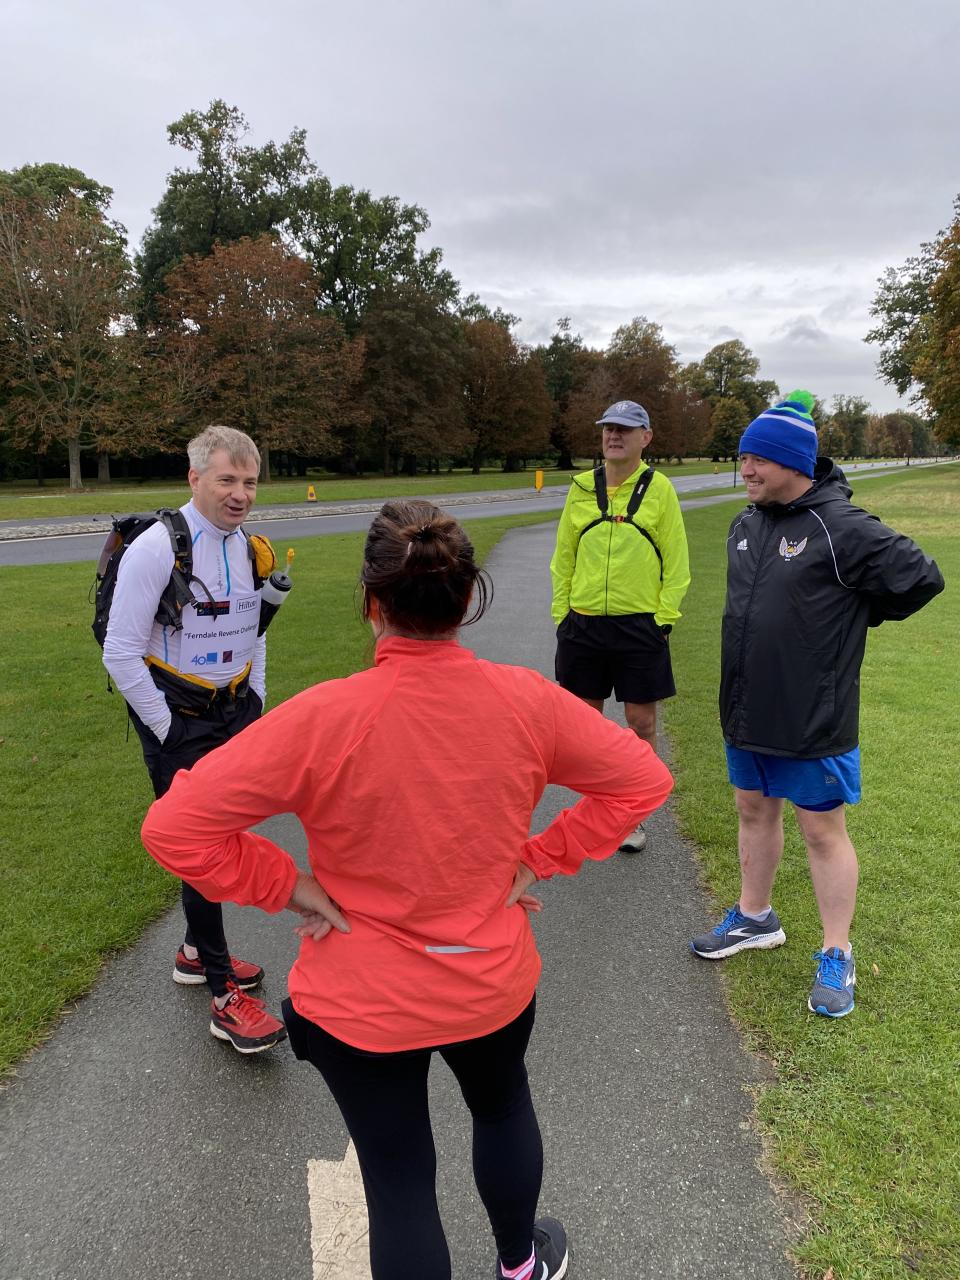 Michael Ferndale with his Dublin support runners from the Blackrock Athletic Club